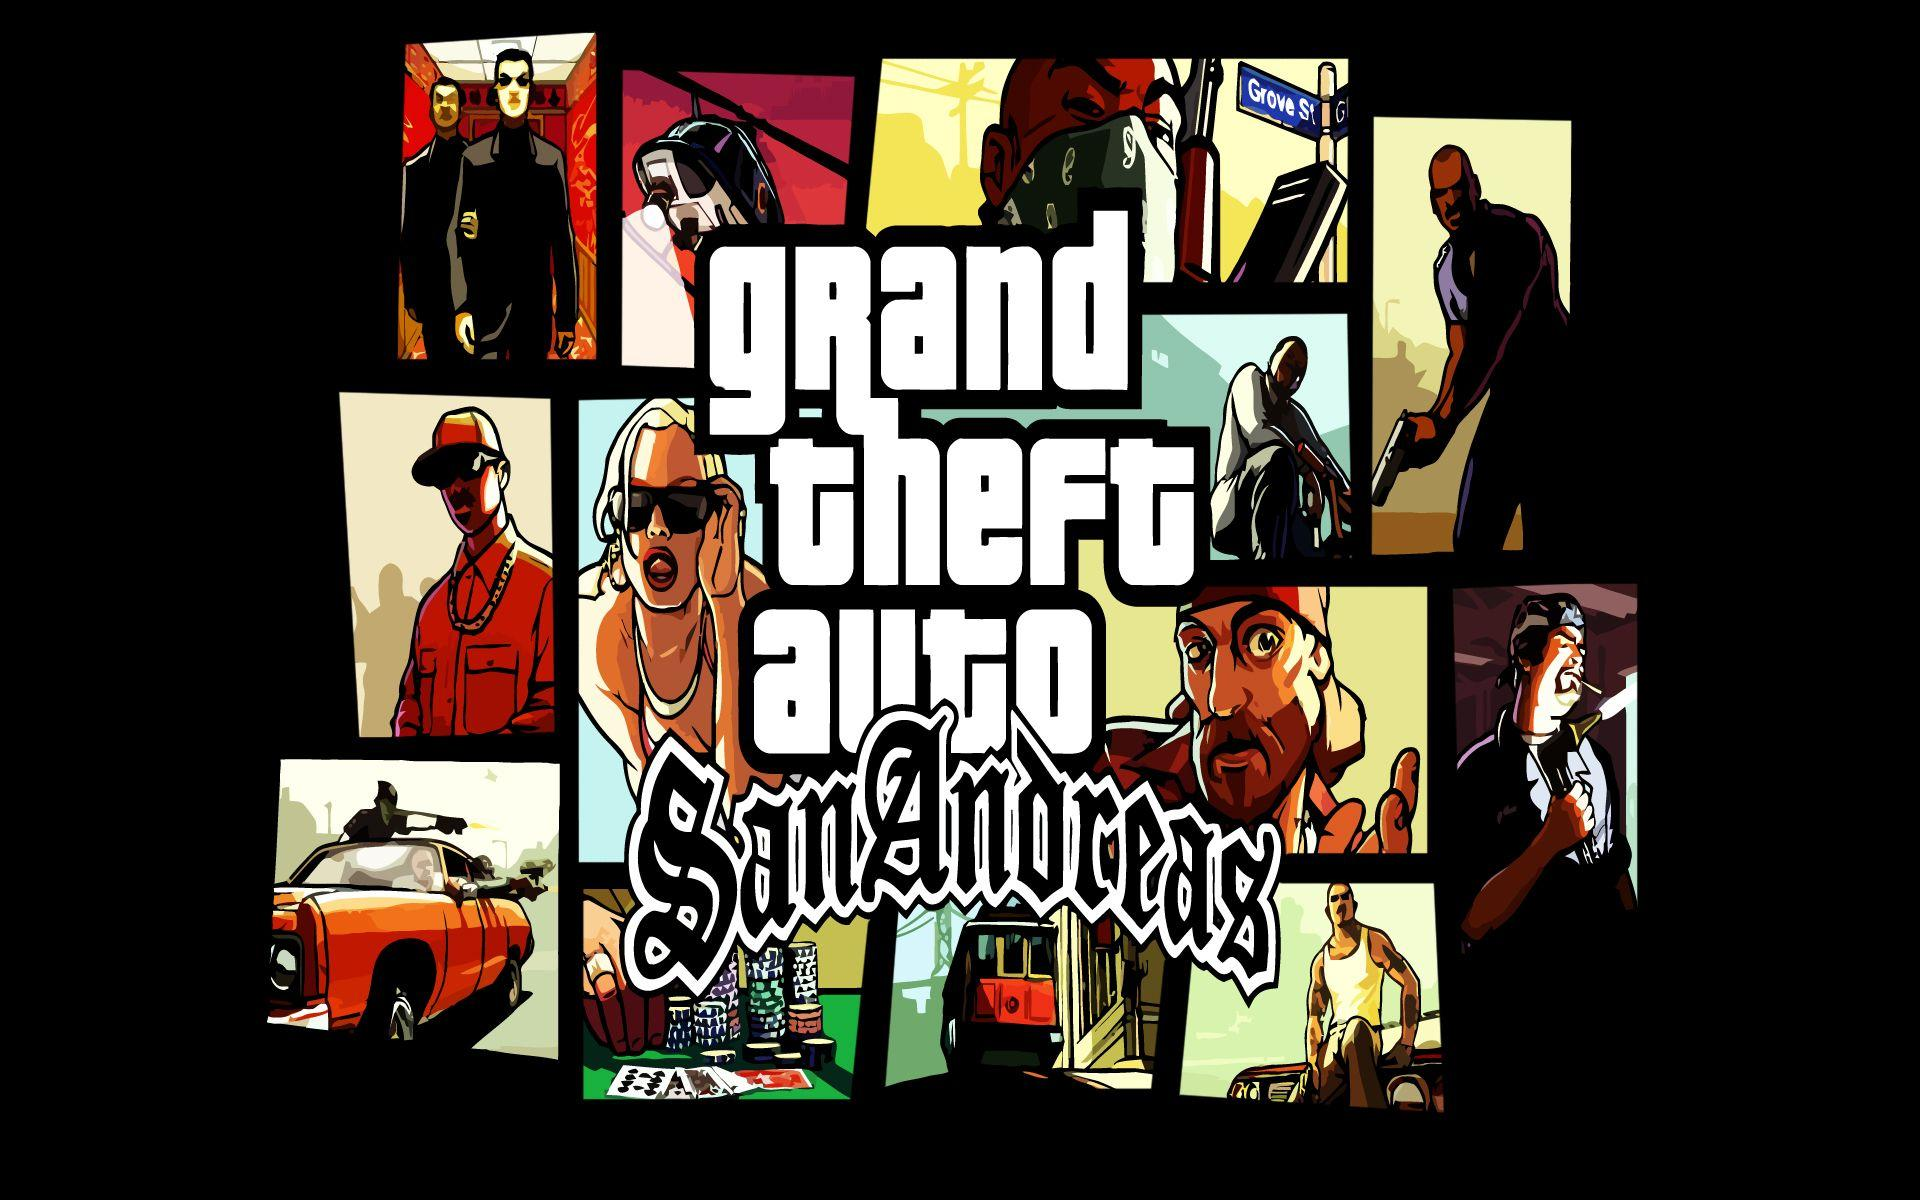 Free Download Grand Theft Auto San Andreas Wallpapers 1920x1200